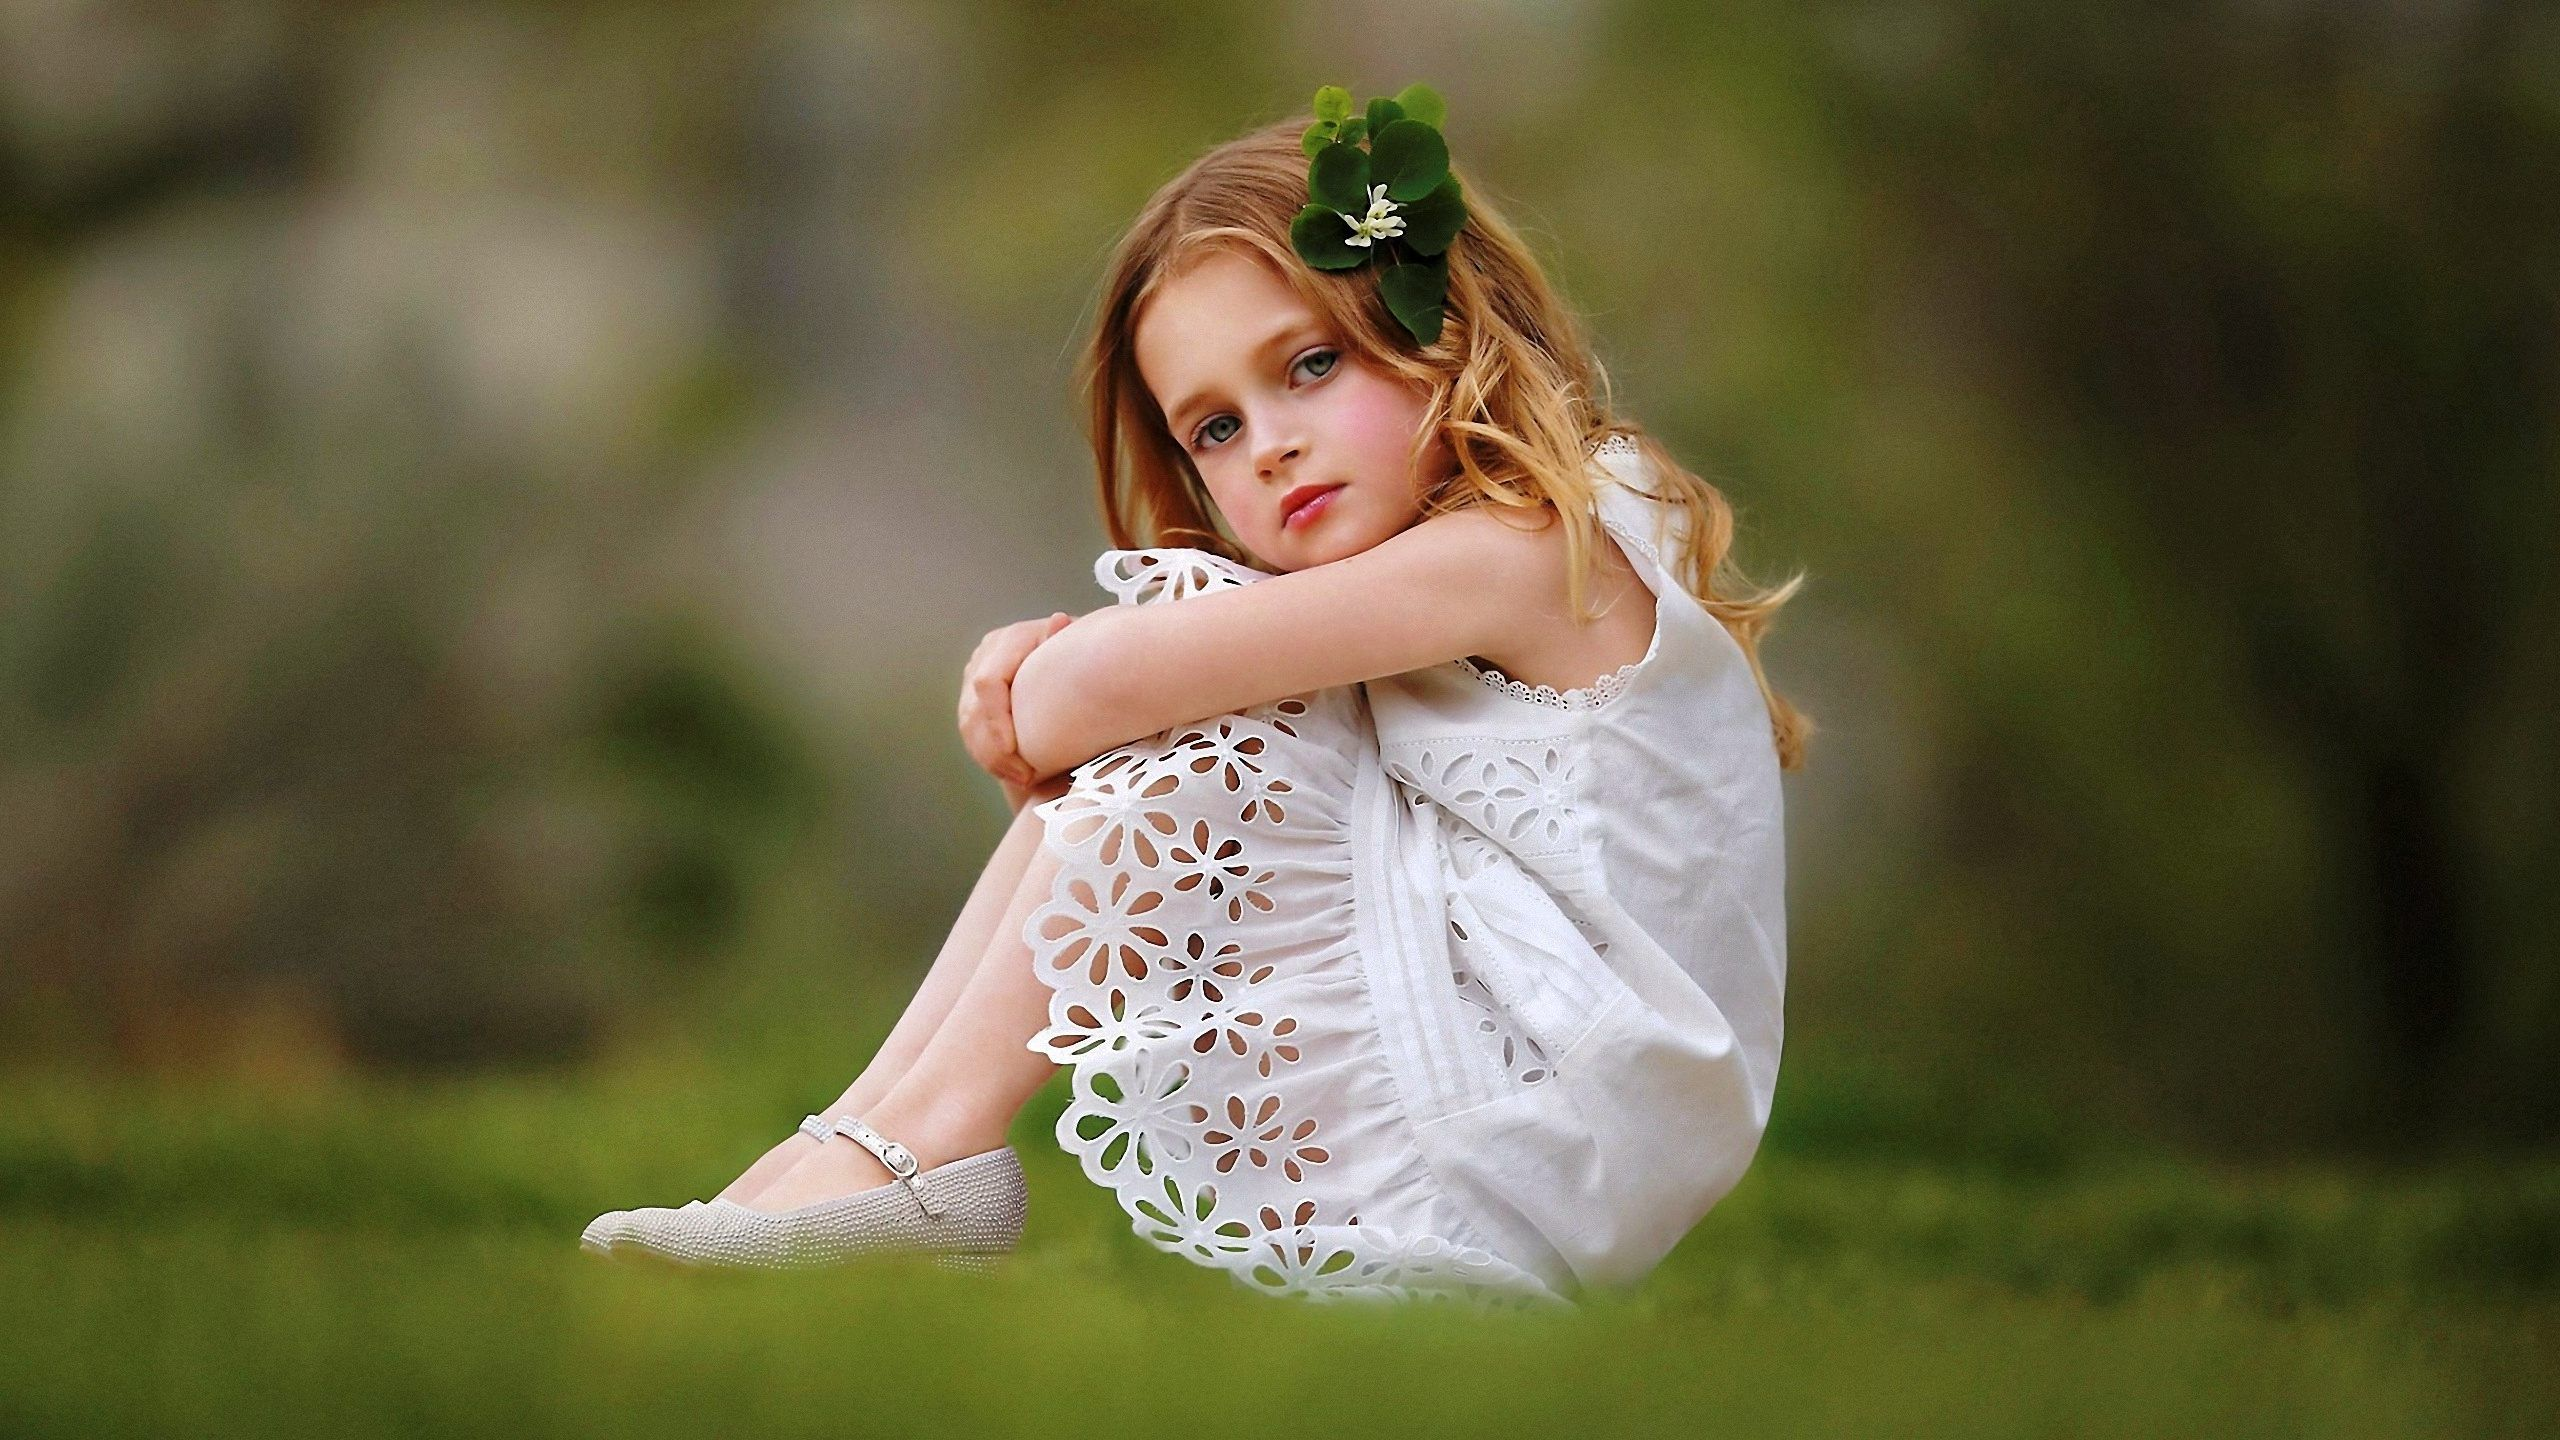 little girl photos | child photography of cute little girl wallpaper